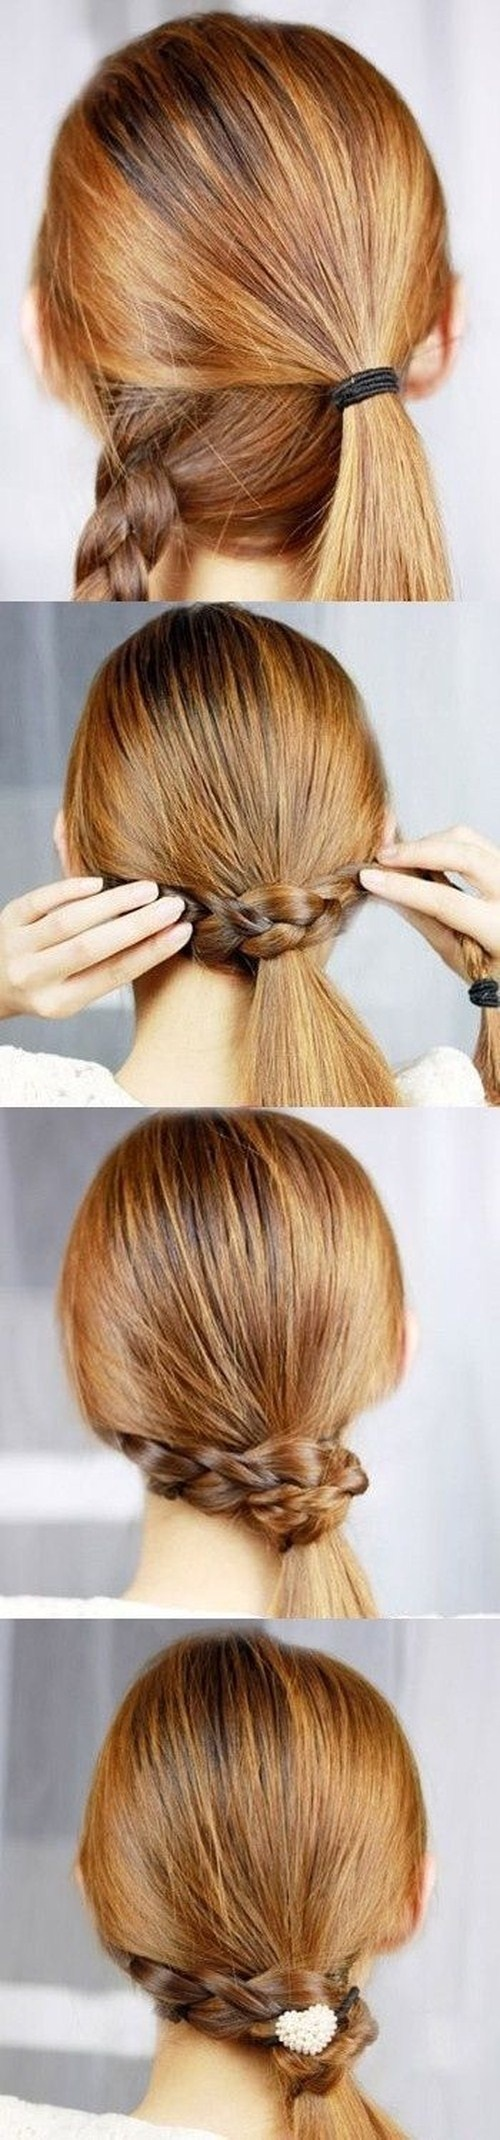 Braid-Wrapped Ponytail - really nice! doesn't take long and is actually quite secure